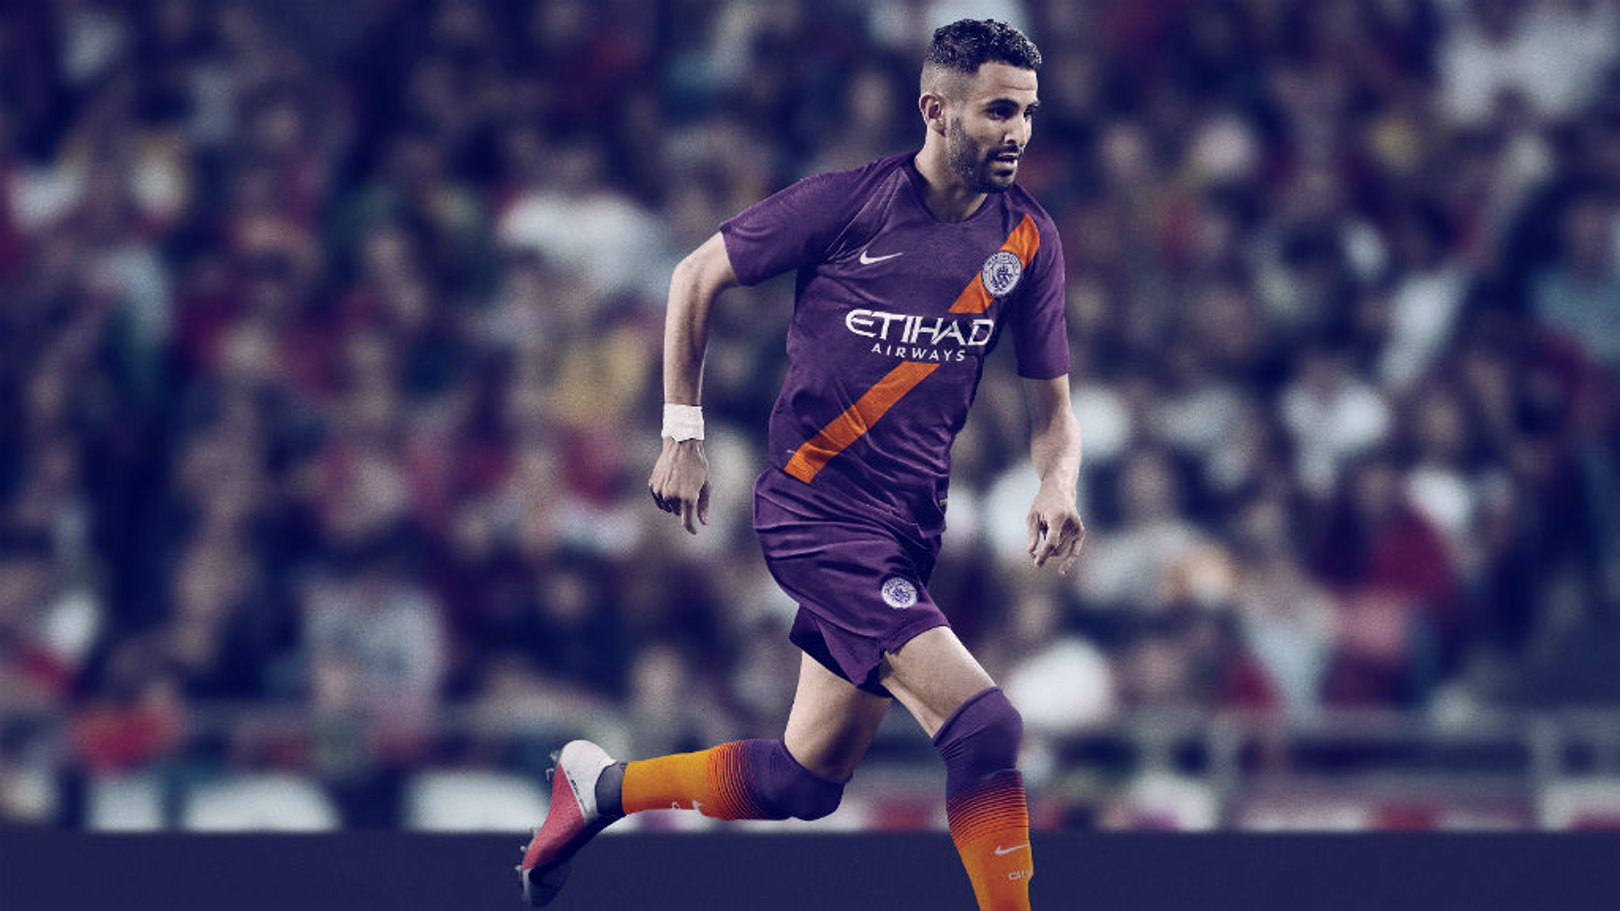 REVEALED: The new City third kit, inspired by the past and present